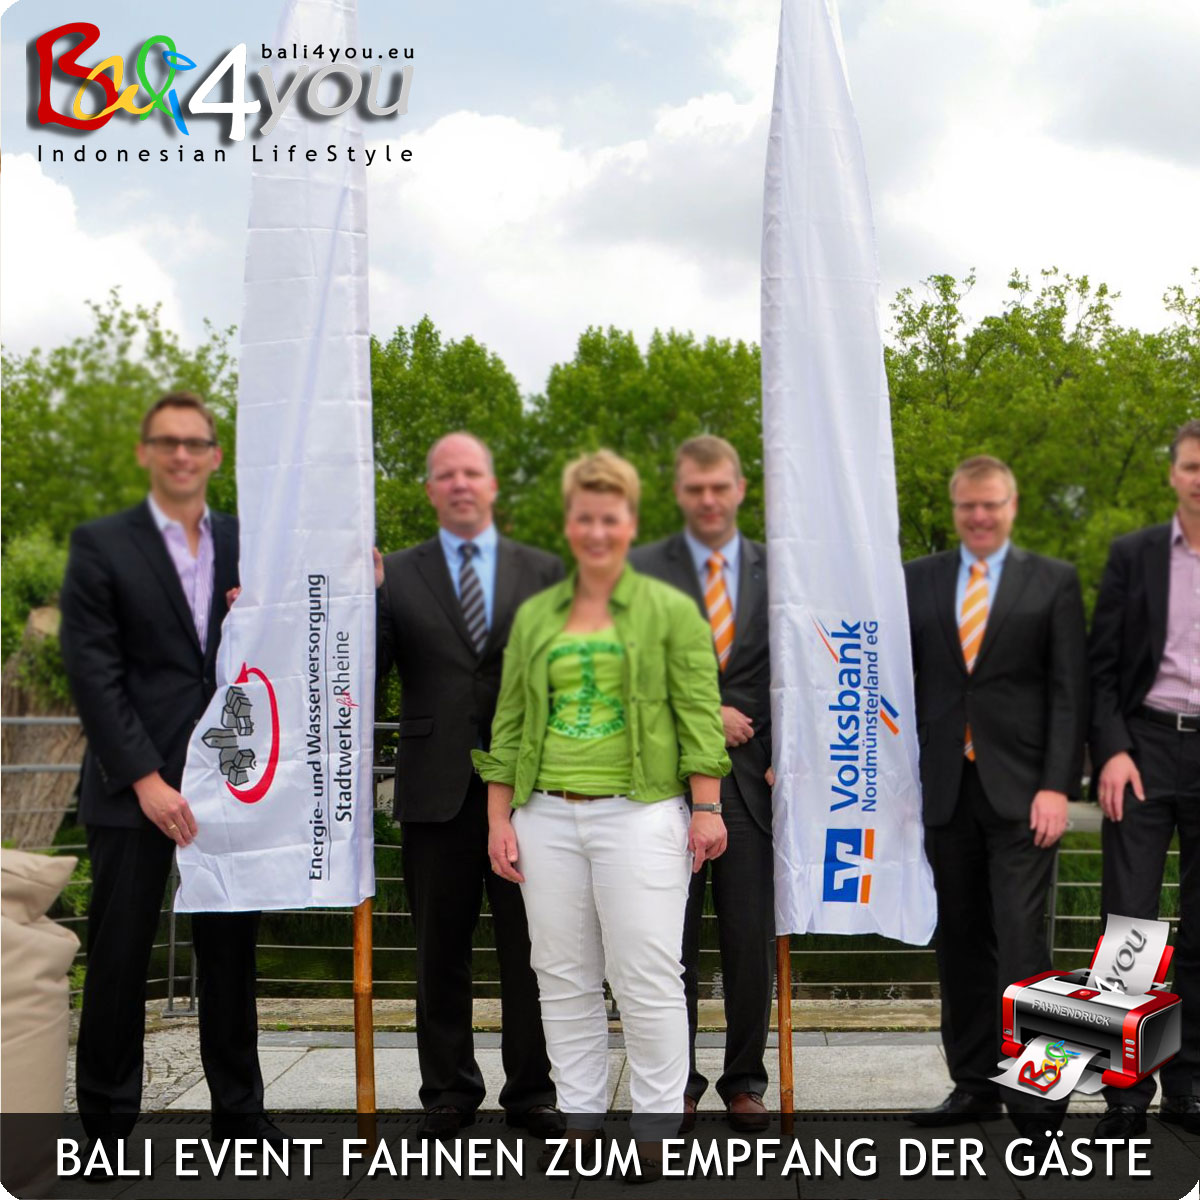 Balifahne_Bali4you_Event2ivs7NMzhVMrnM